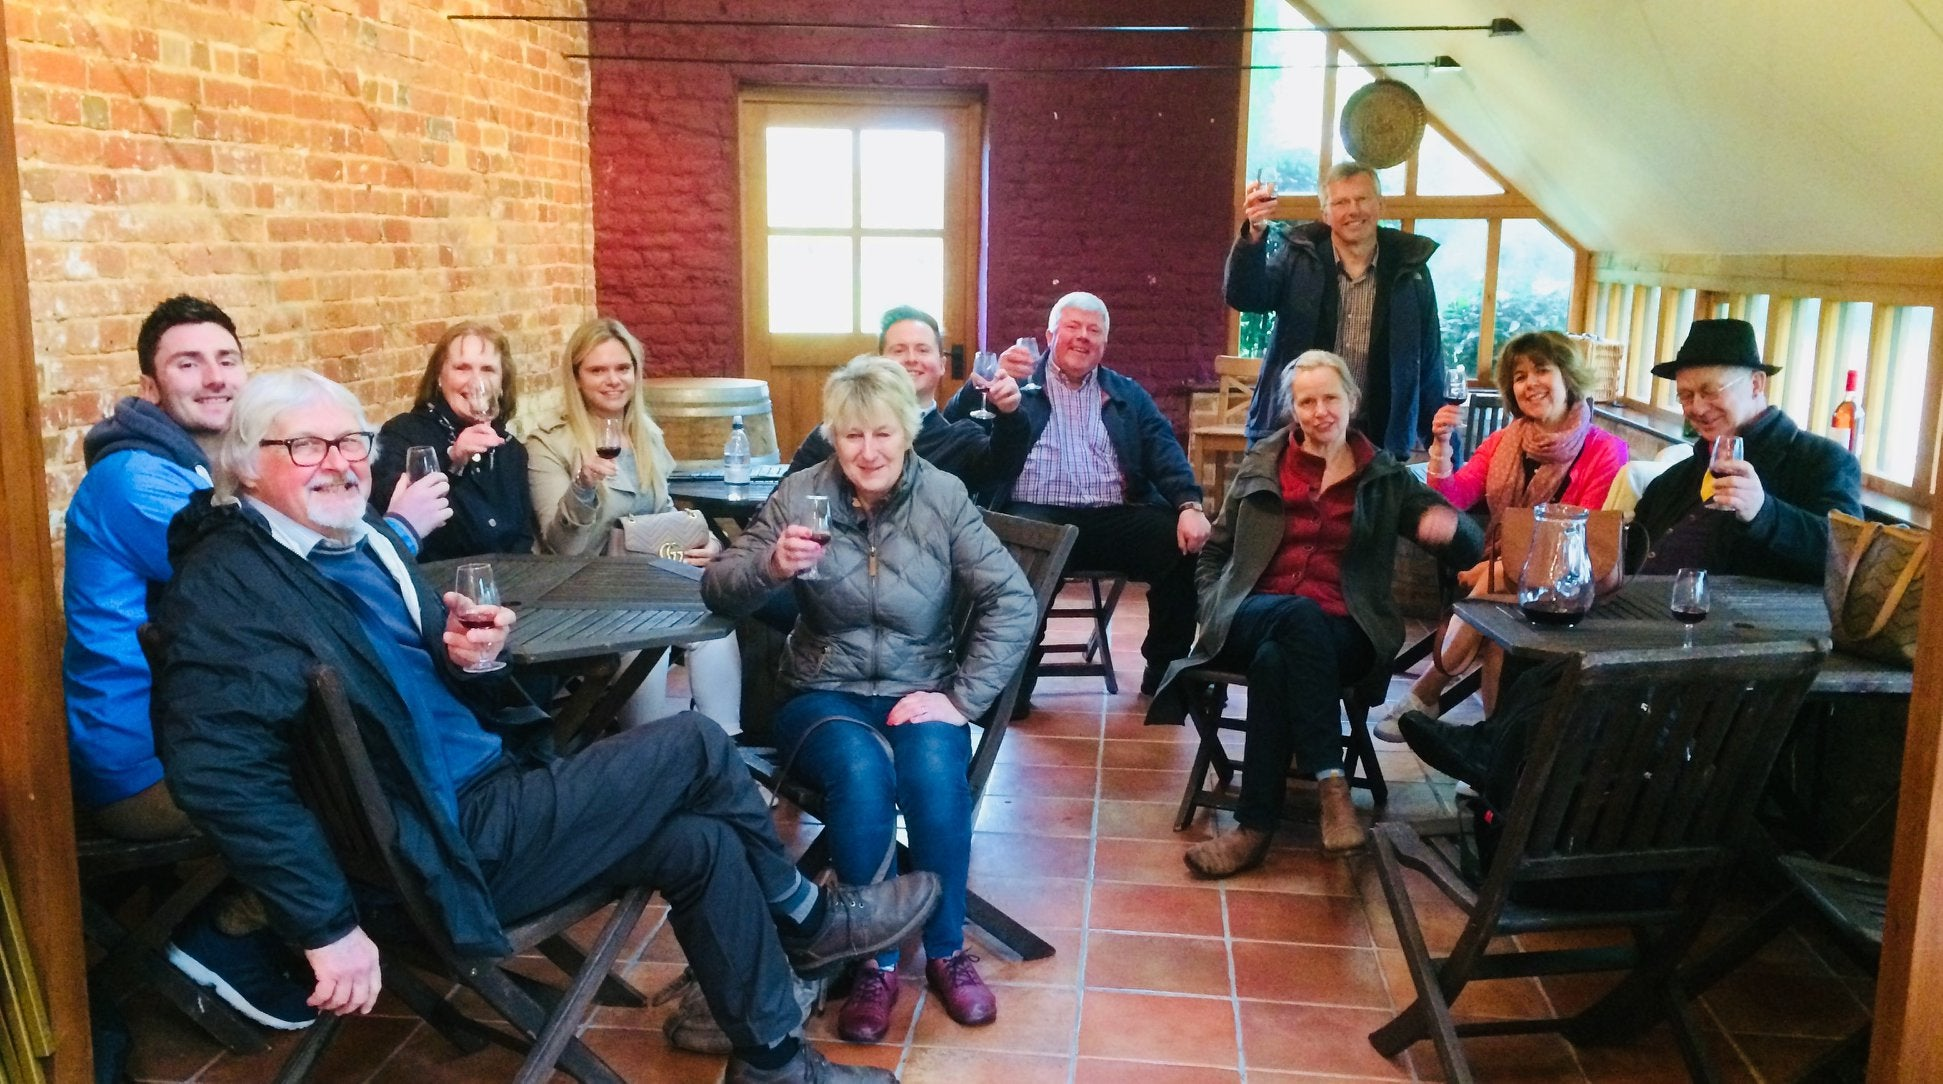 Saturday 6th July 2019 at 10:30pm - WINE LOVER Tour